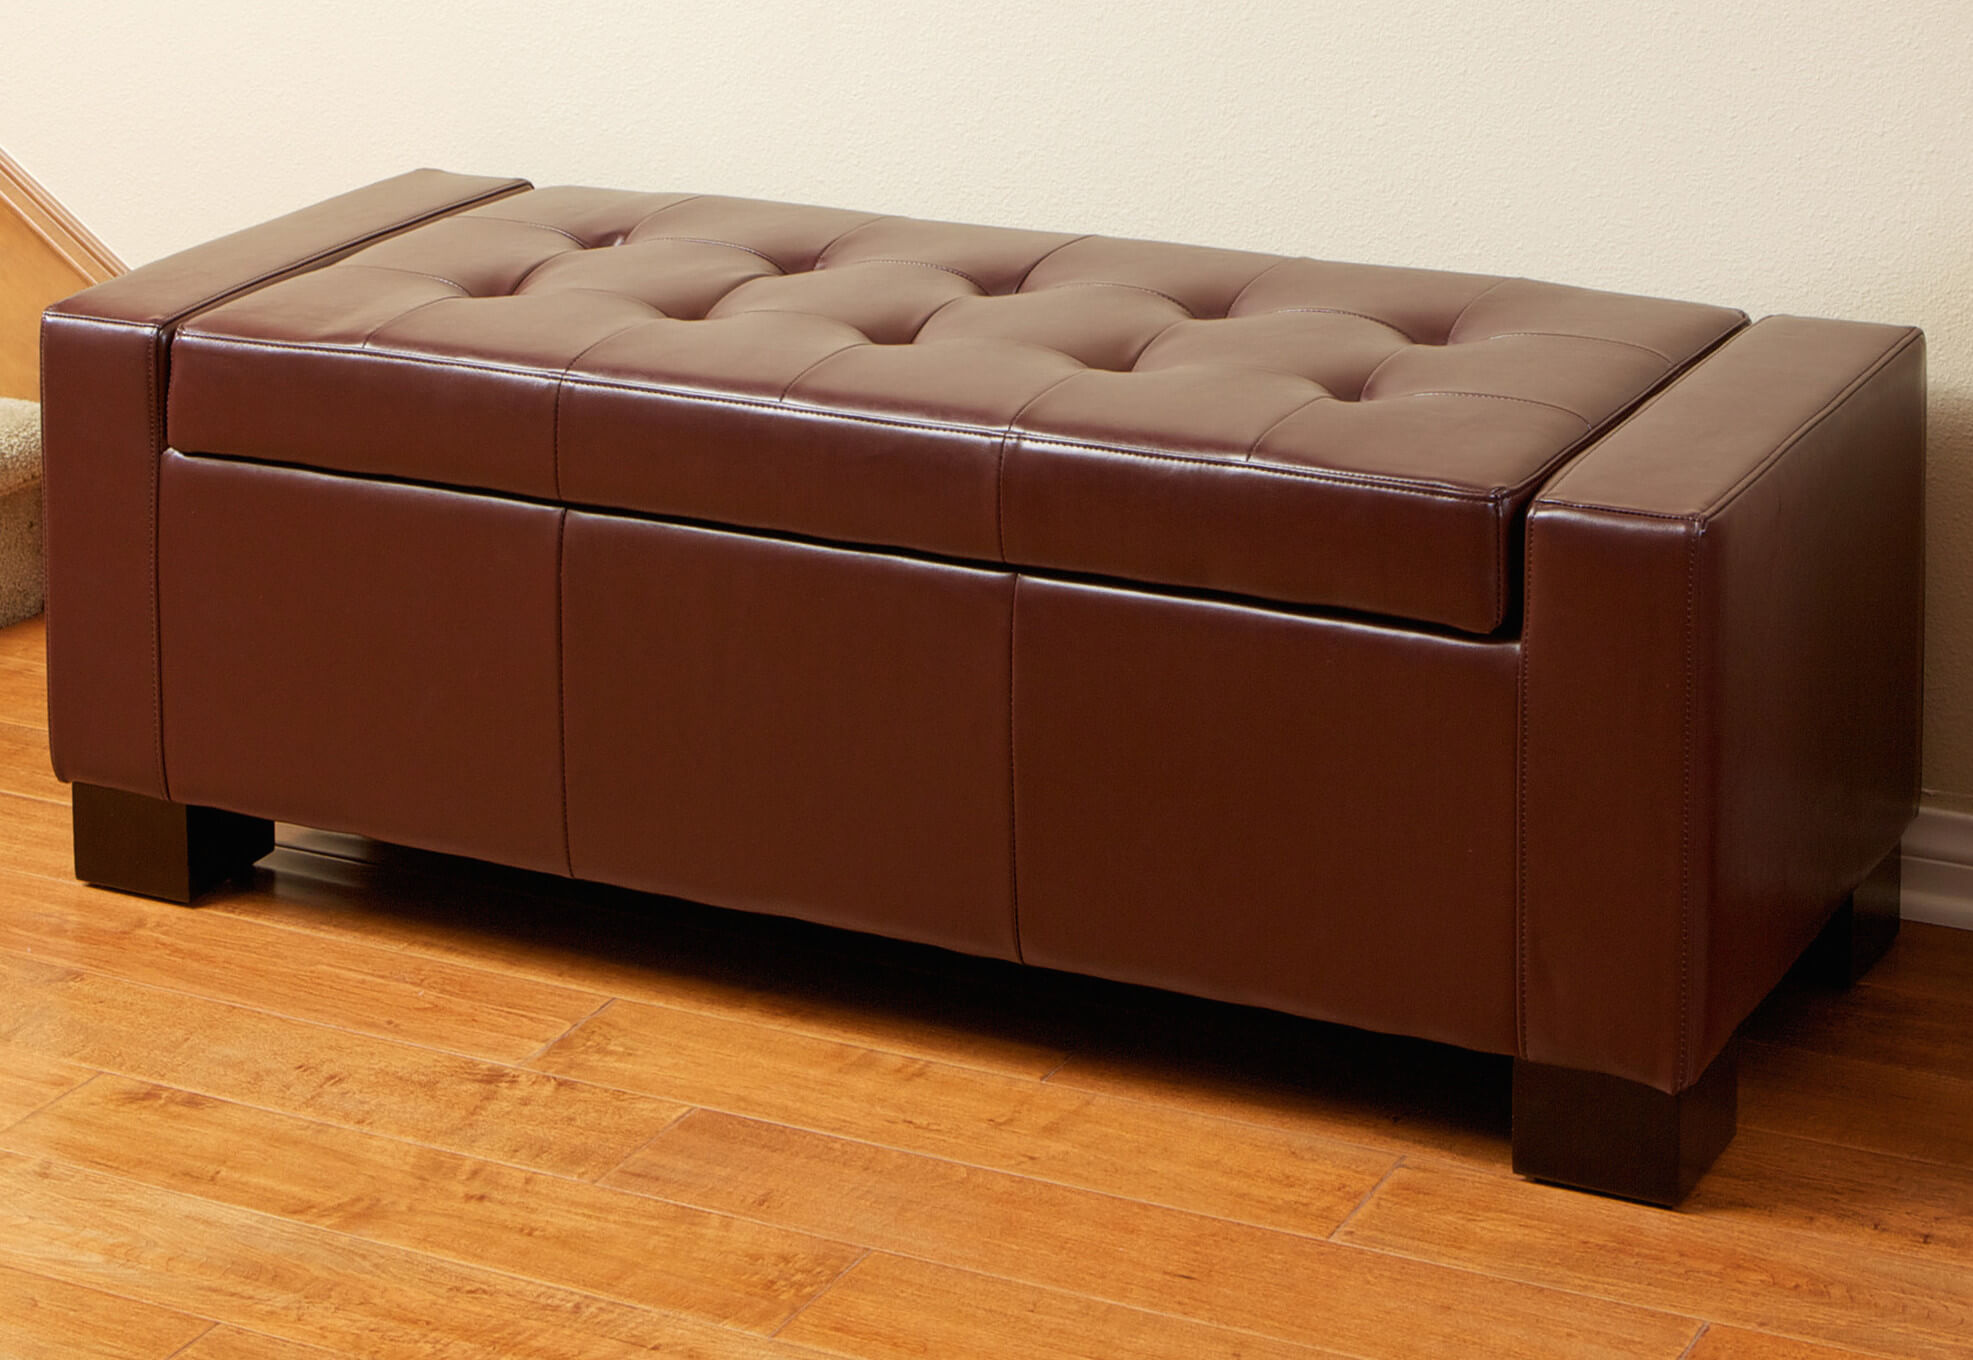 Leather clad storage benches are most often found in entryways, bedrooms, or even living rooms. The soft tones and sensuous material bring luxury and utility in equal measure.